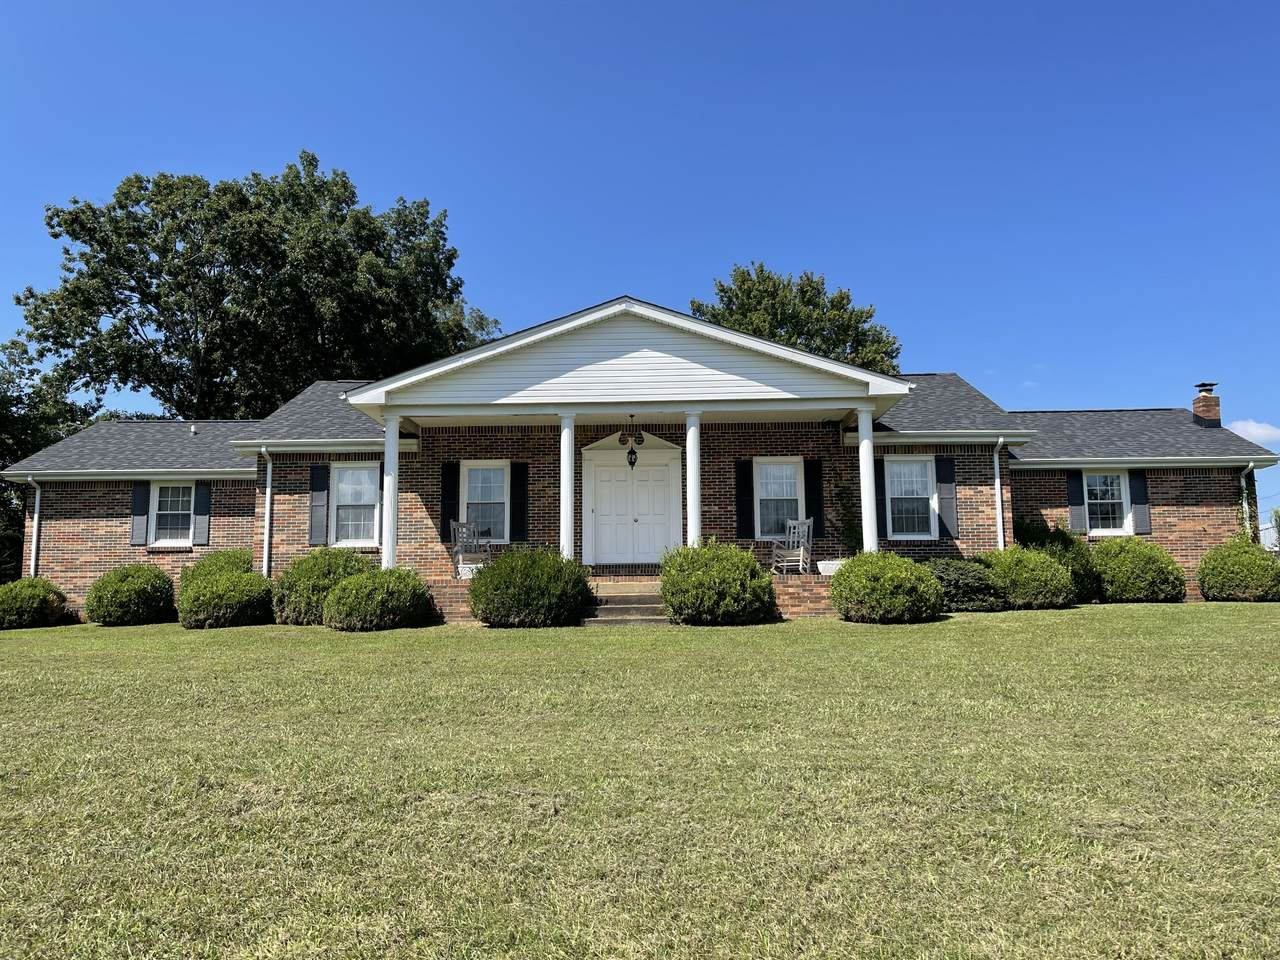 2081 Old County House Rd - Photo 1